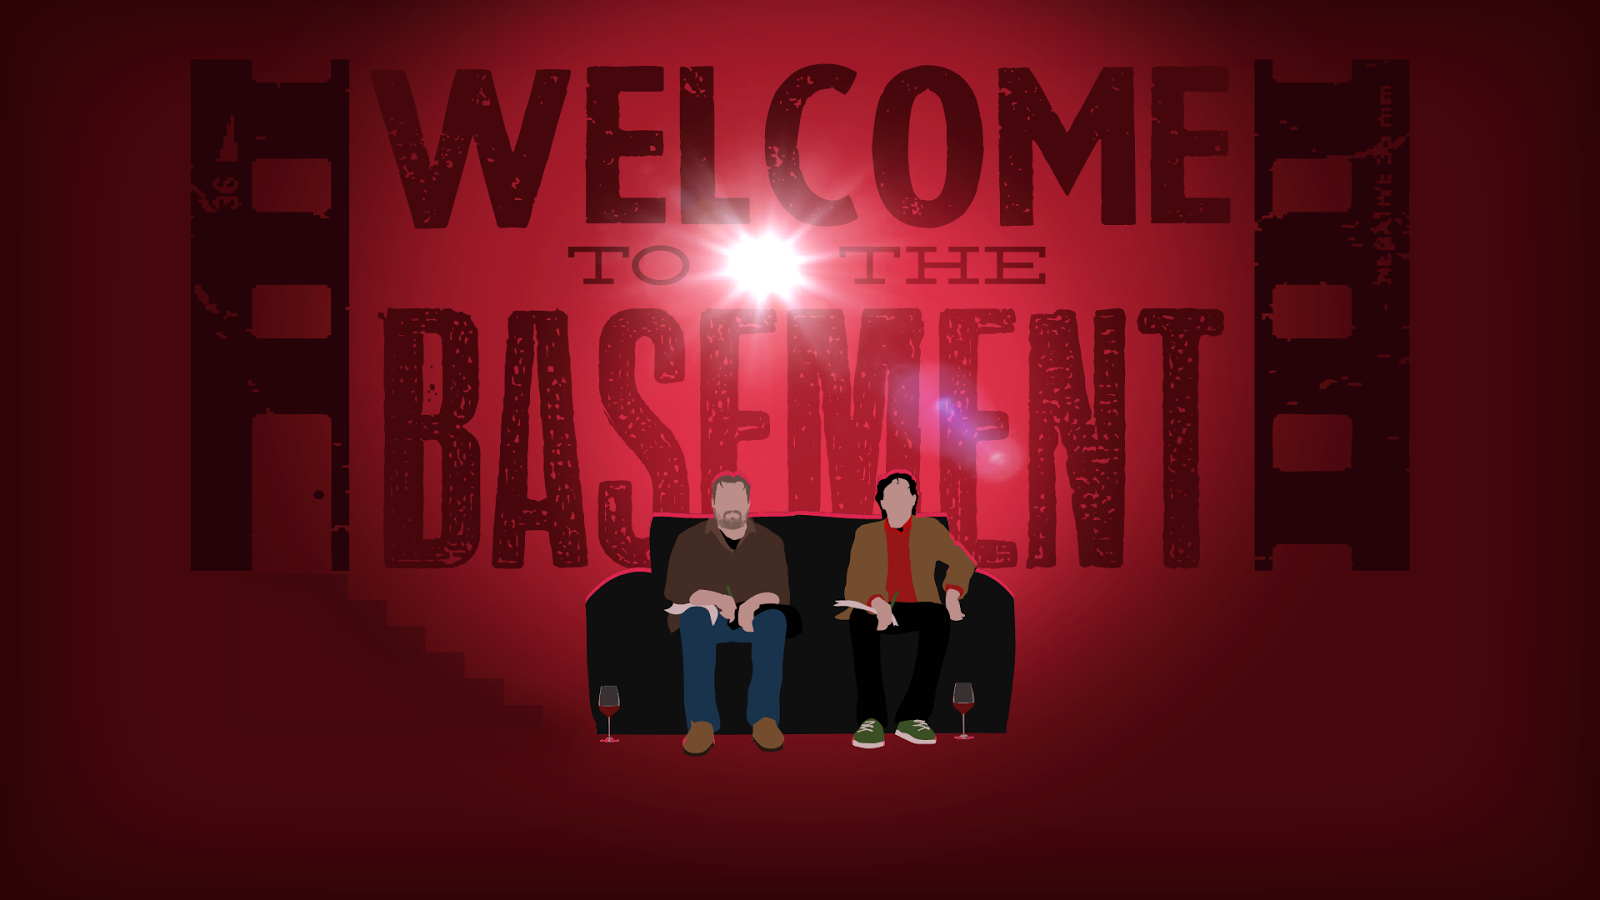 watch another of the cool online show called welcome to the basement